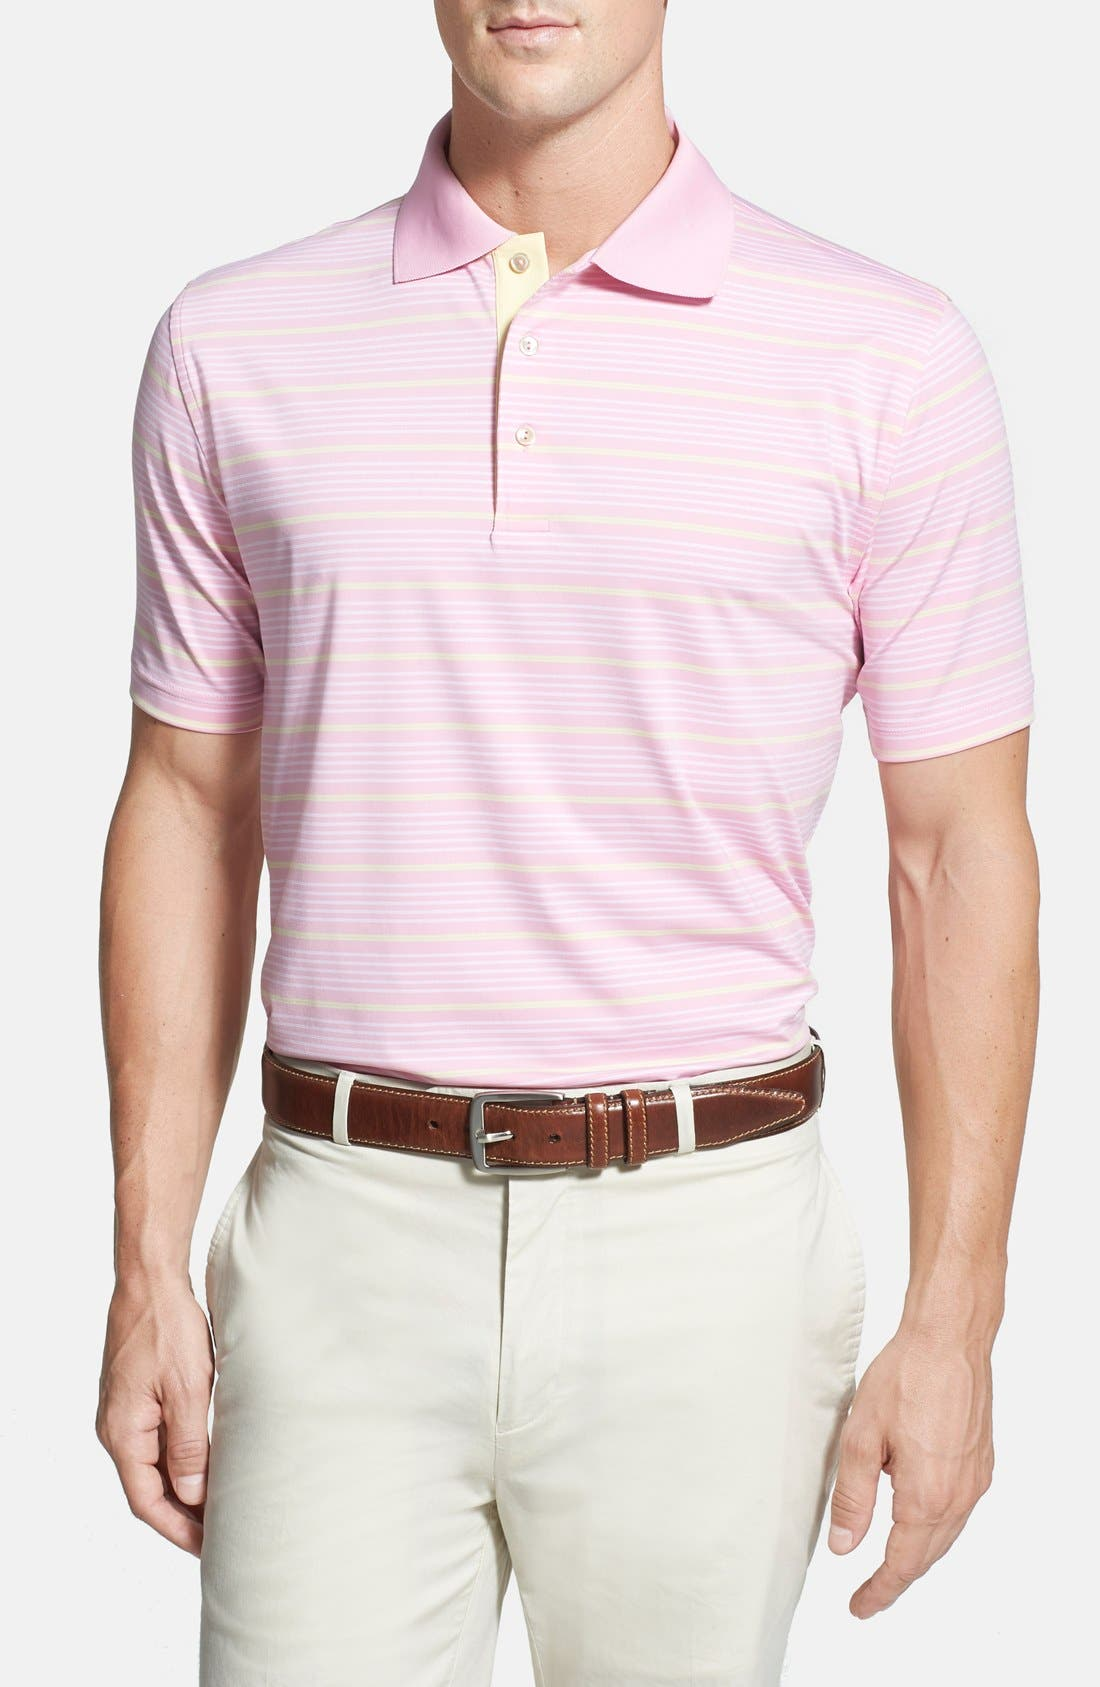 'Staley' Moisture Wicking Polo,                         Main,                         color, Bermuda Pink